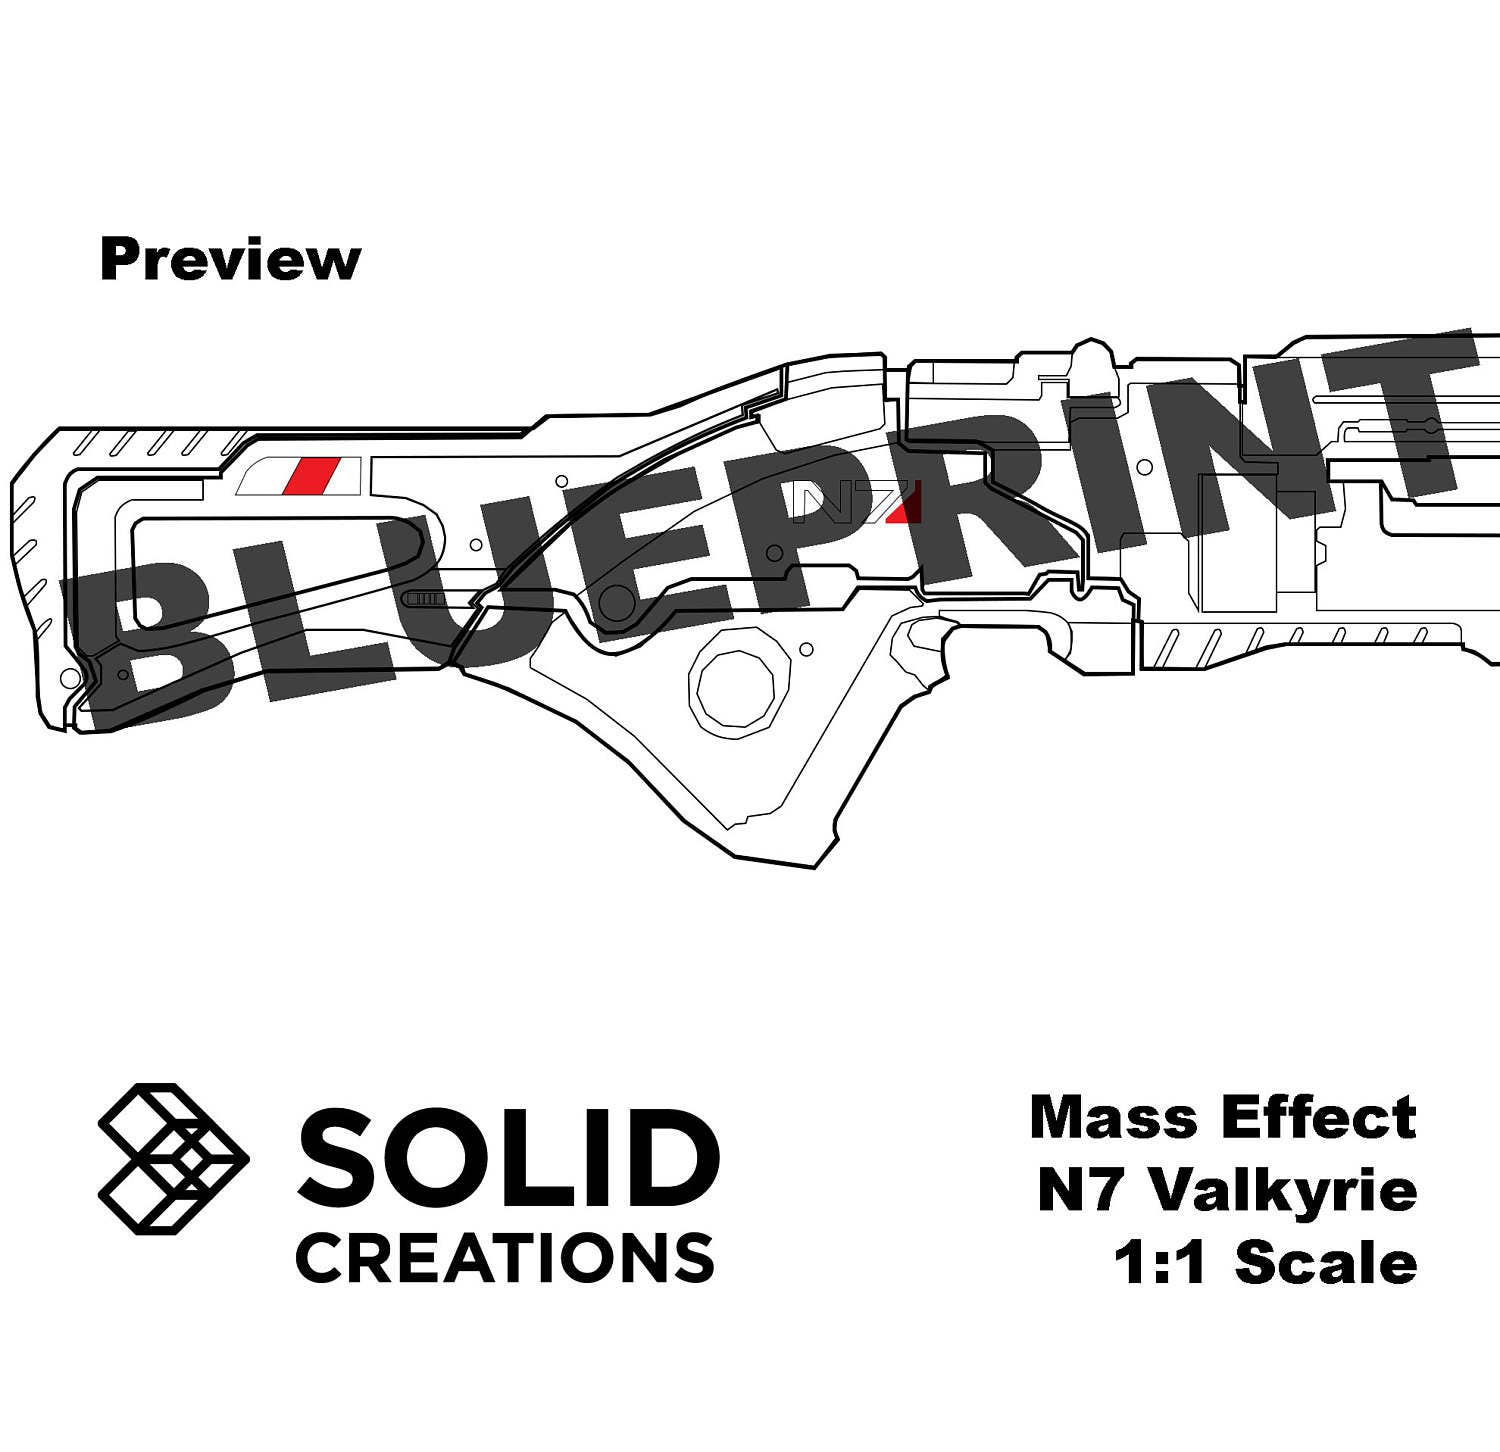 N7 valkyrie blueprint mass effect inspired prop template foam this is a digital file malvernweather Choice Image